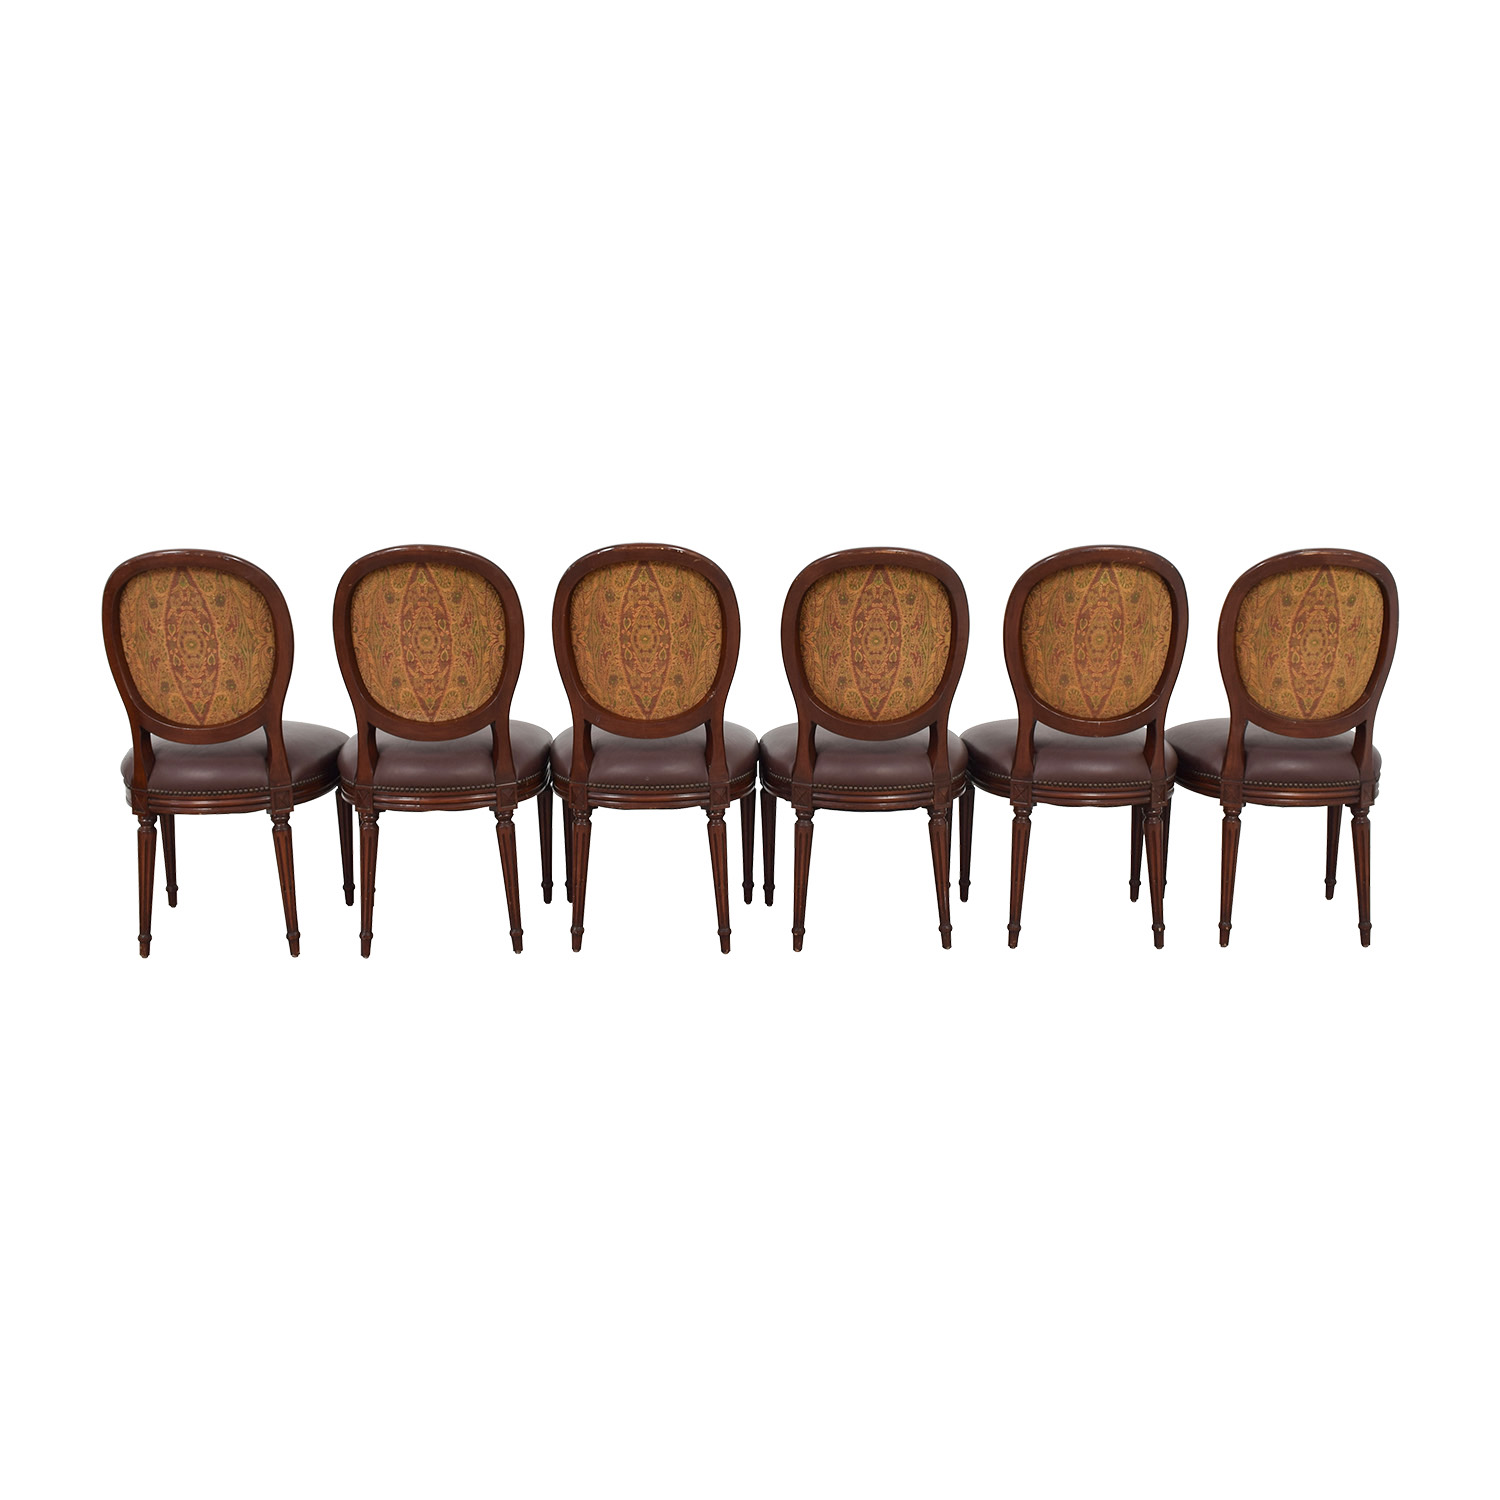 Brown Leather Nailhead French Chairs / Accent Chairs